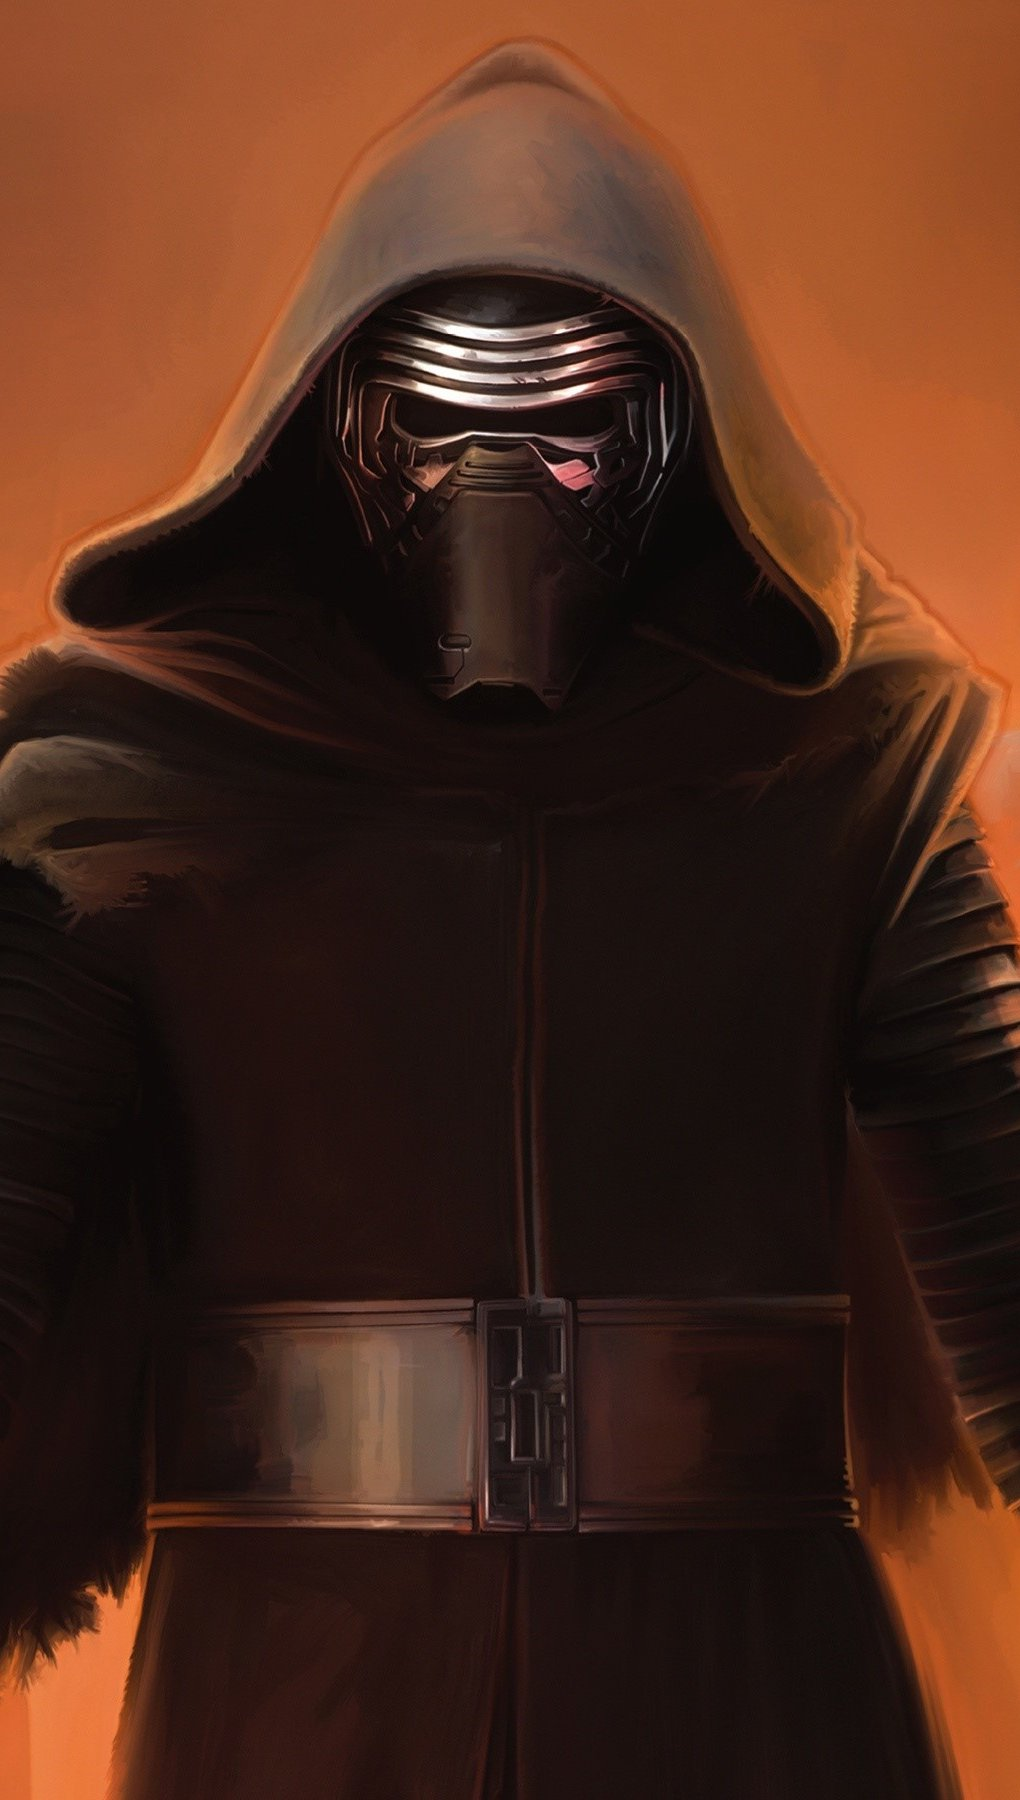 Wallpaper Kylo Ren in Star Wars The Awakening of Force Vertical